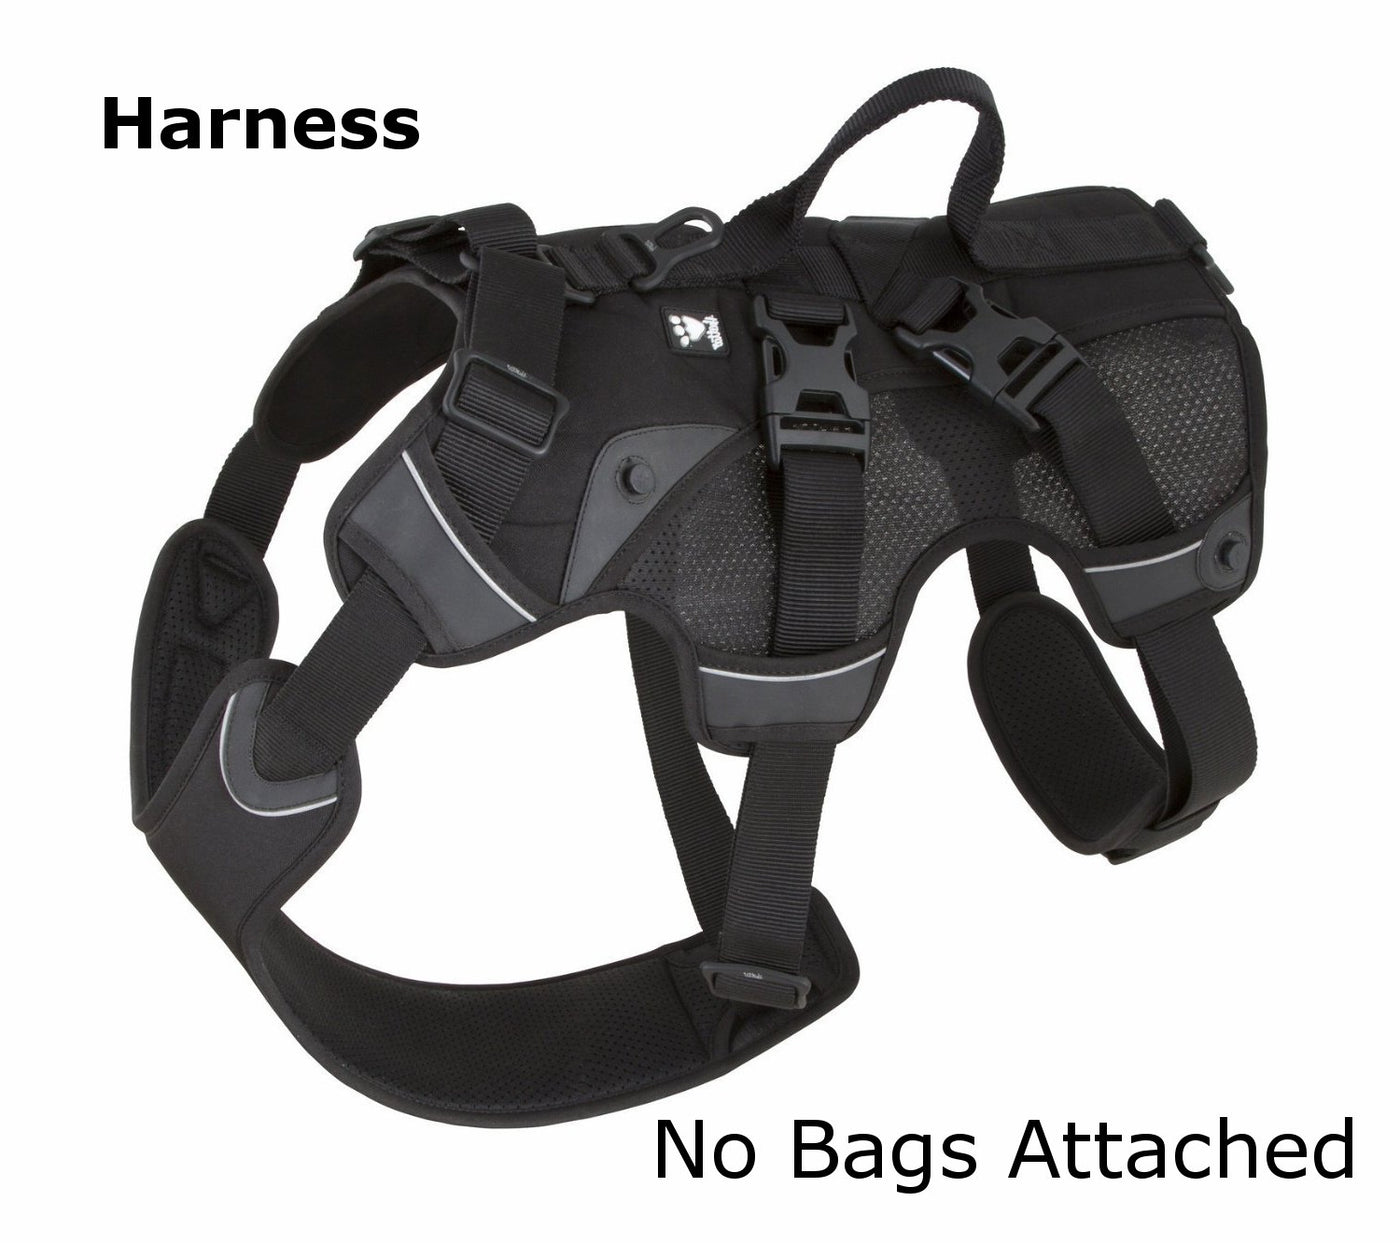 Safety Harness for Car, Walking, Hiking, Running